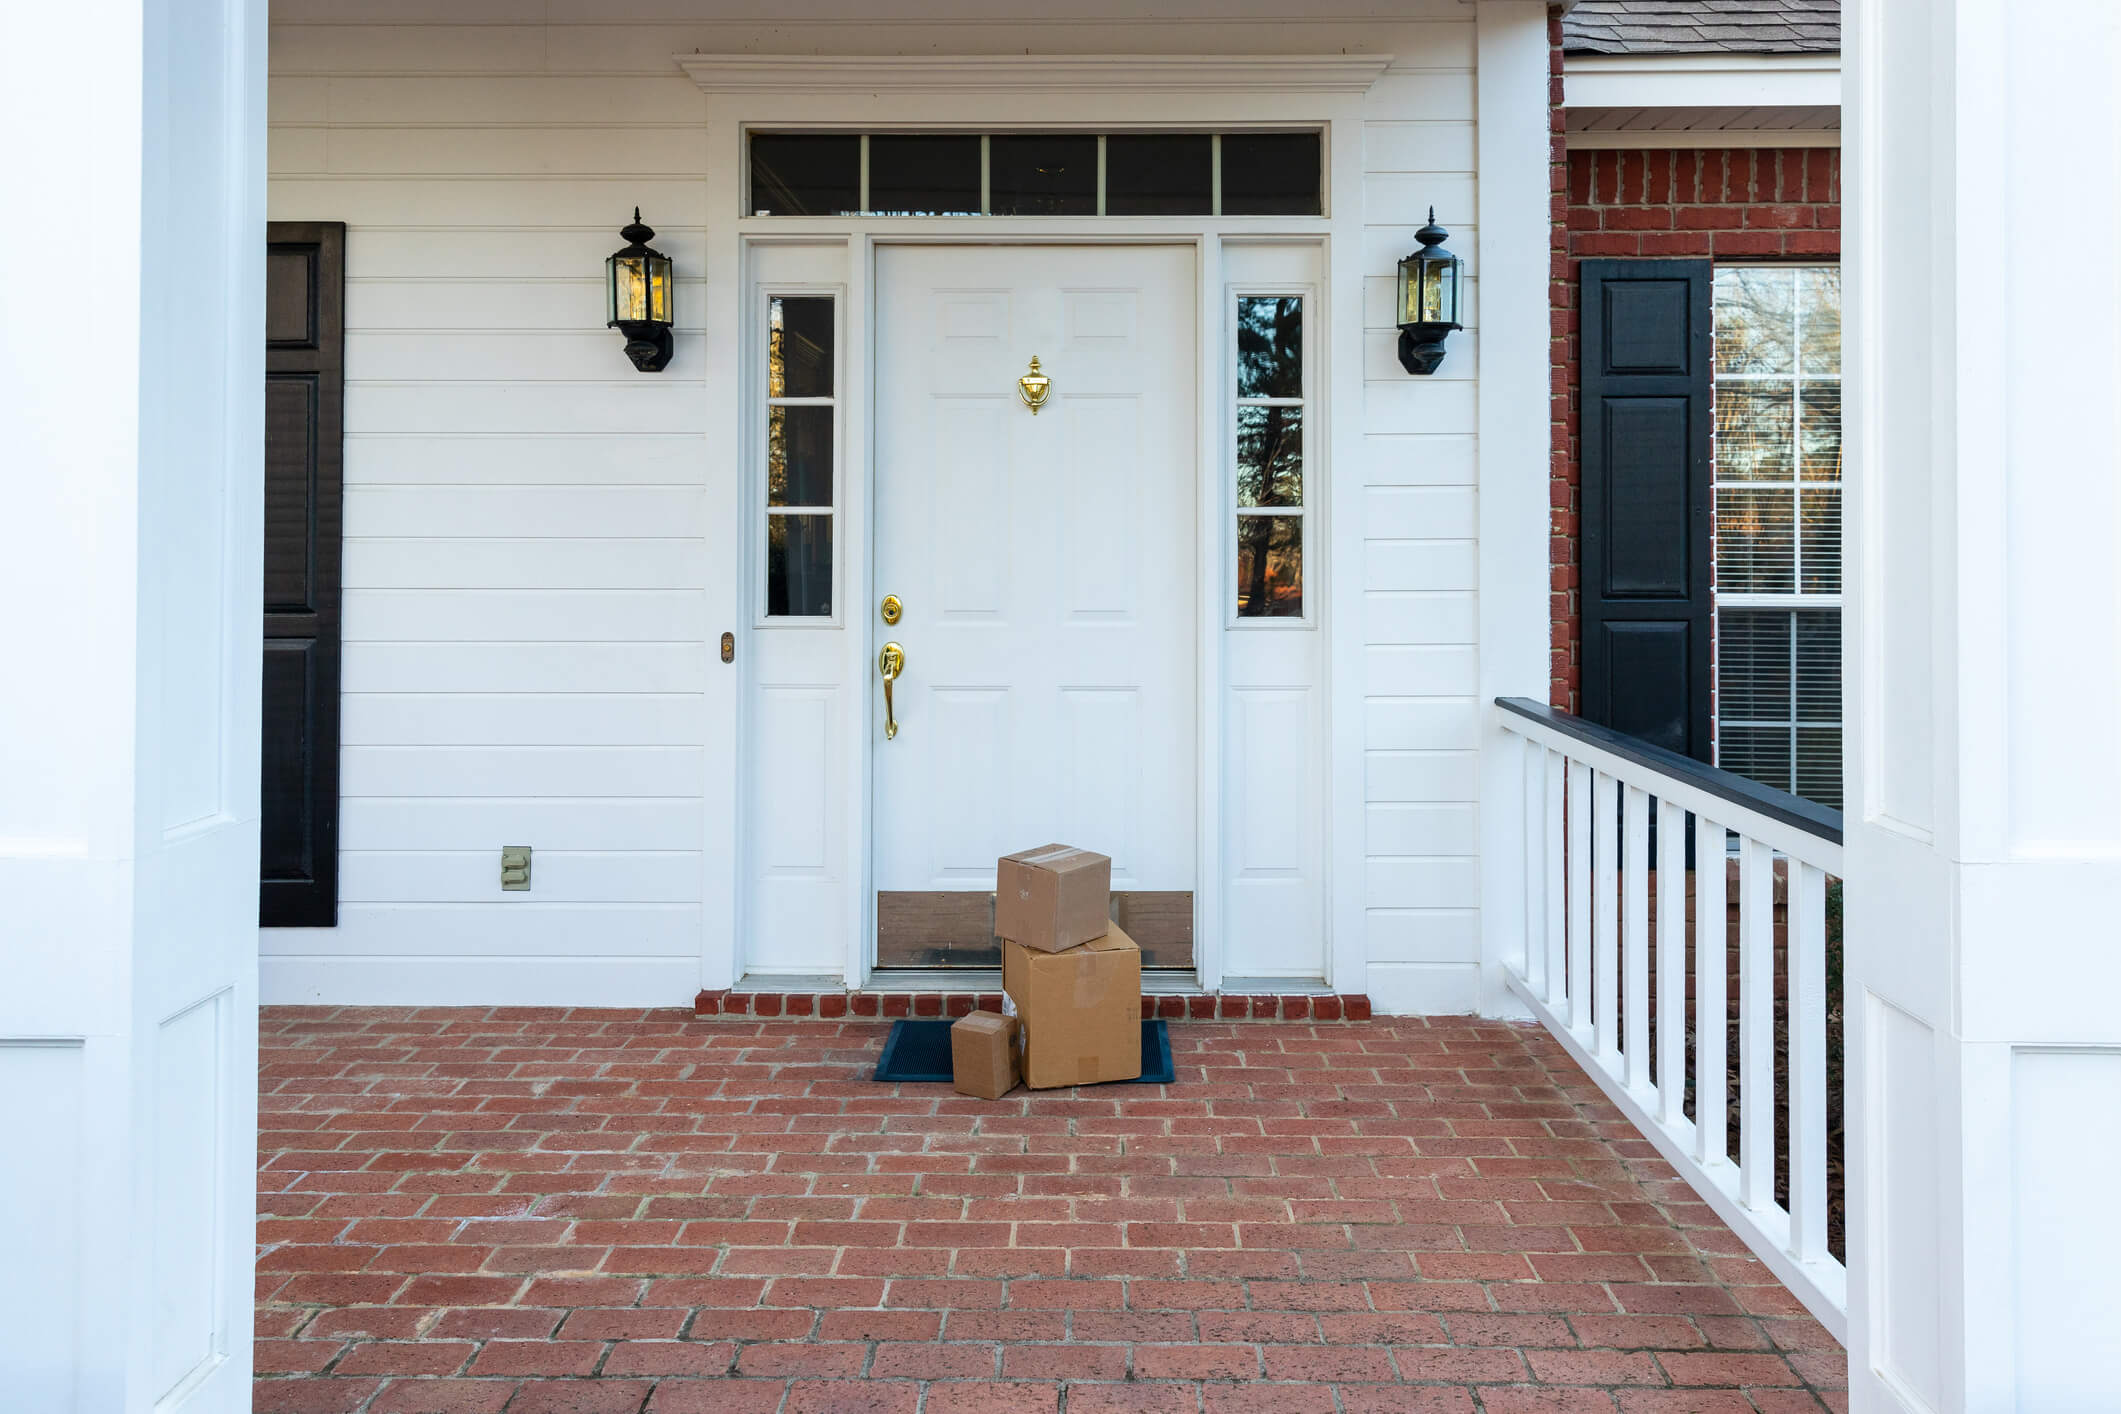 Three boxes piled in front of a white front door on a red brick porch